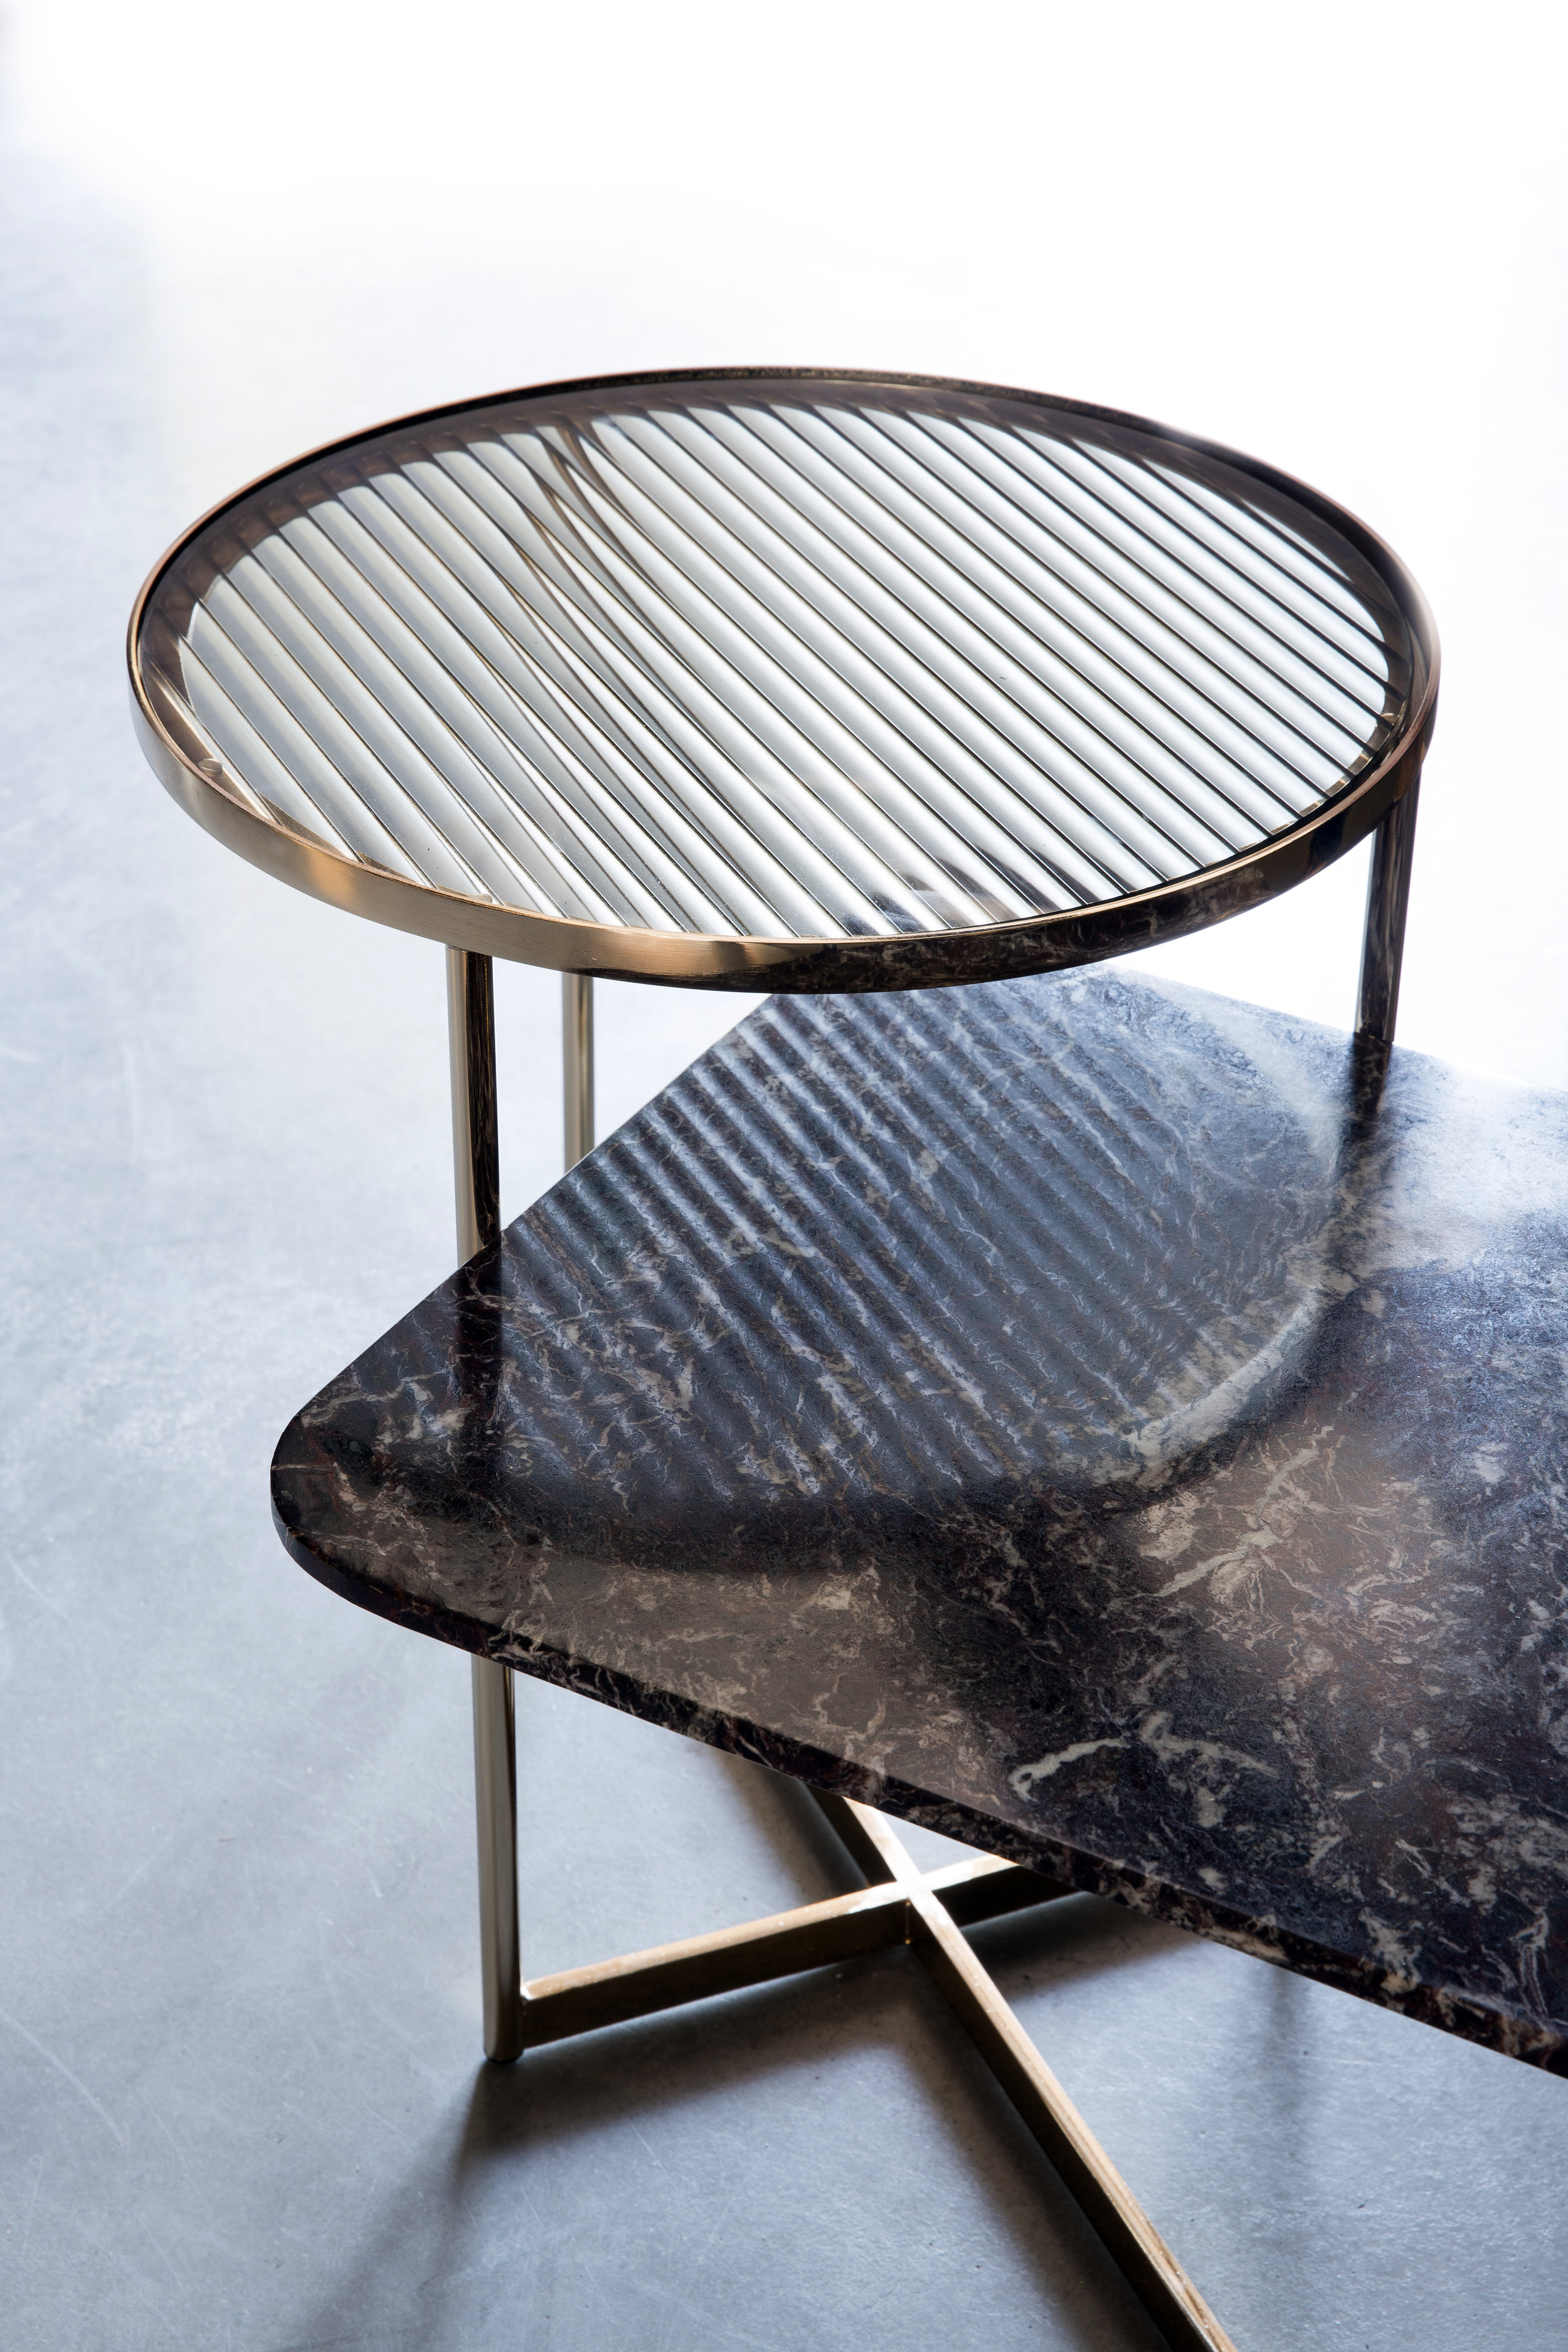 Natural stone and detailed metalwork feature in the new Jeannette outdoor/indoor table series.